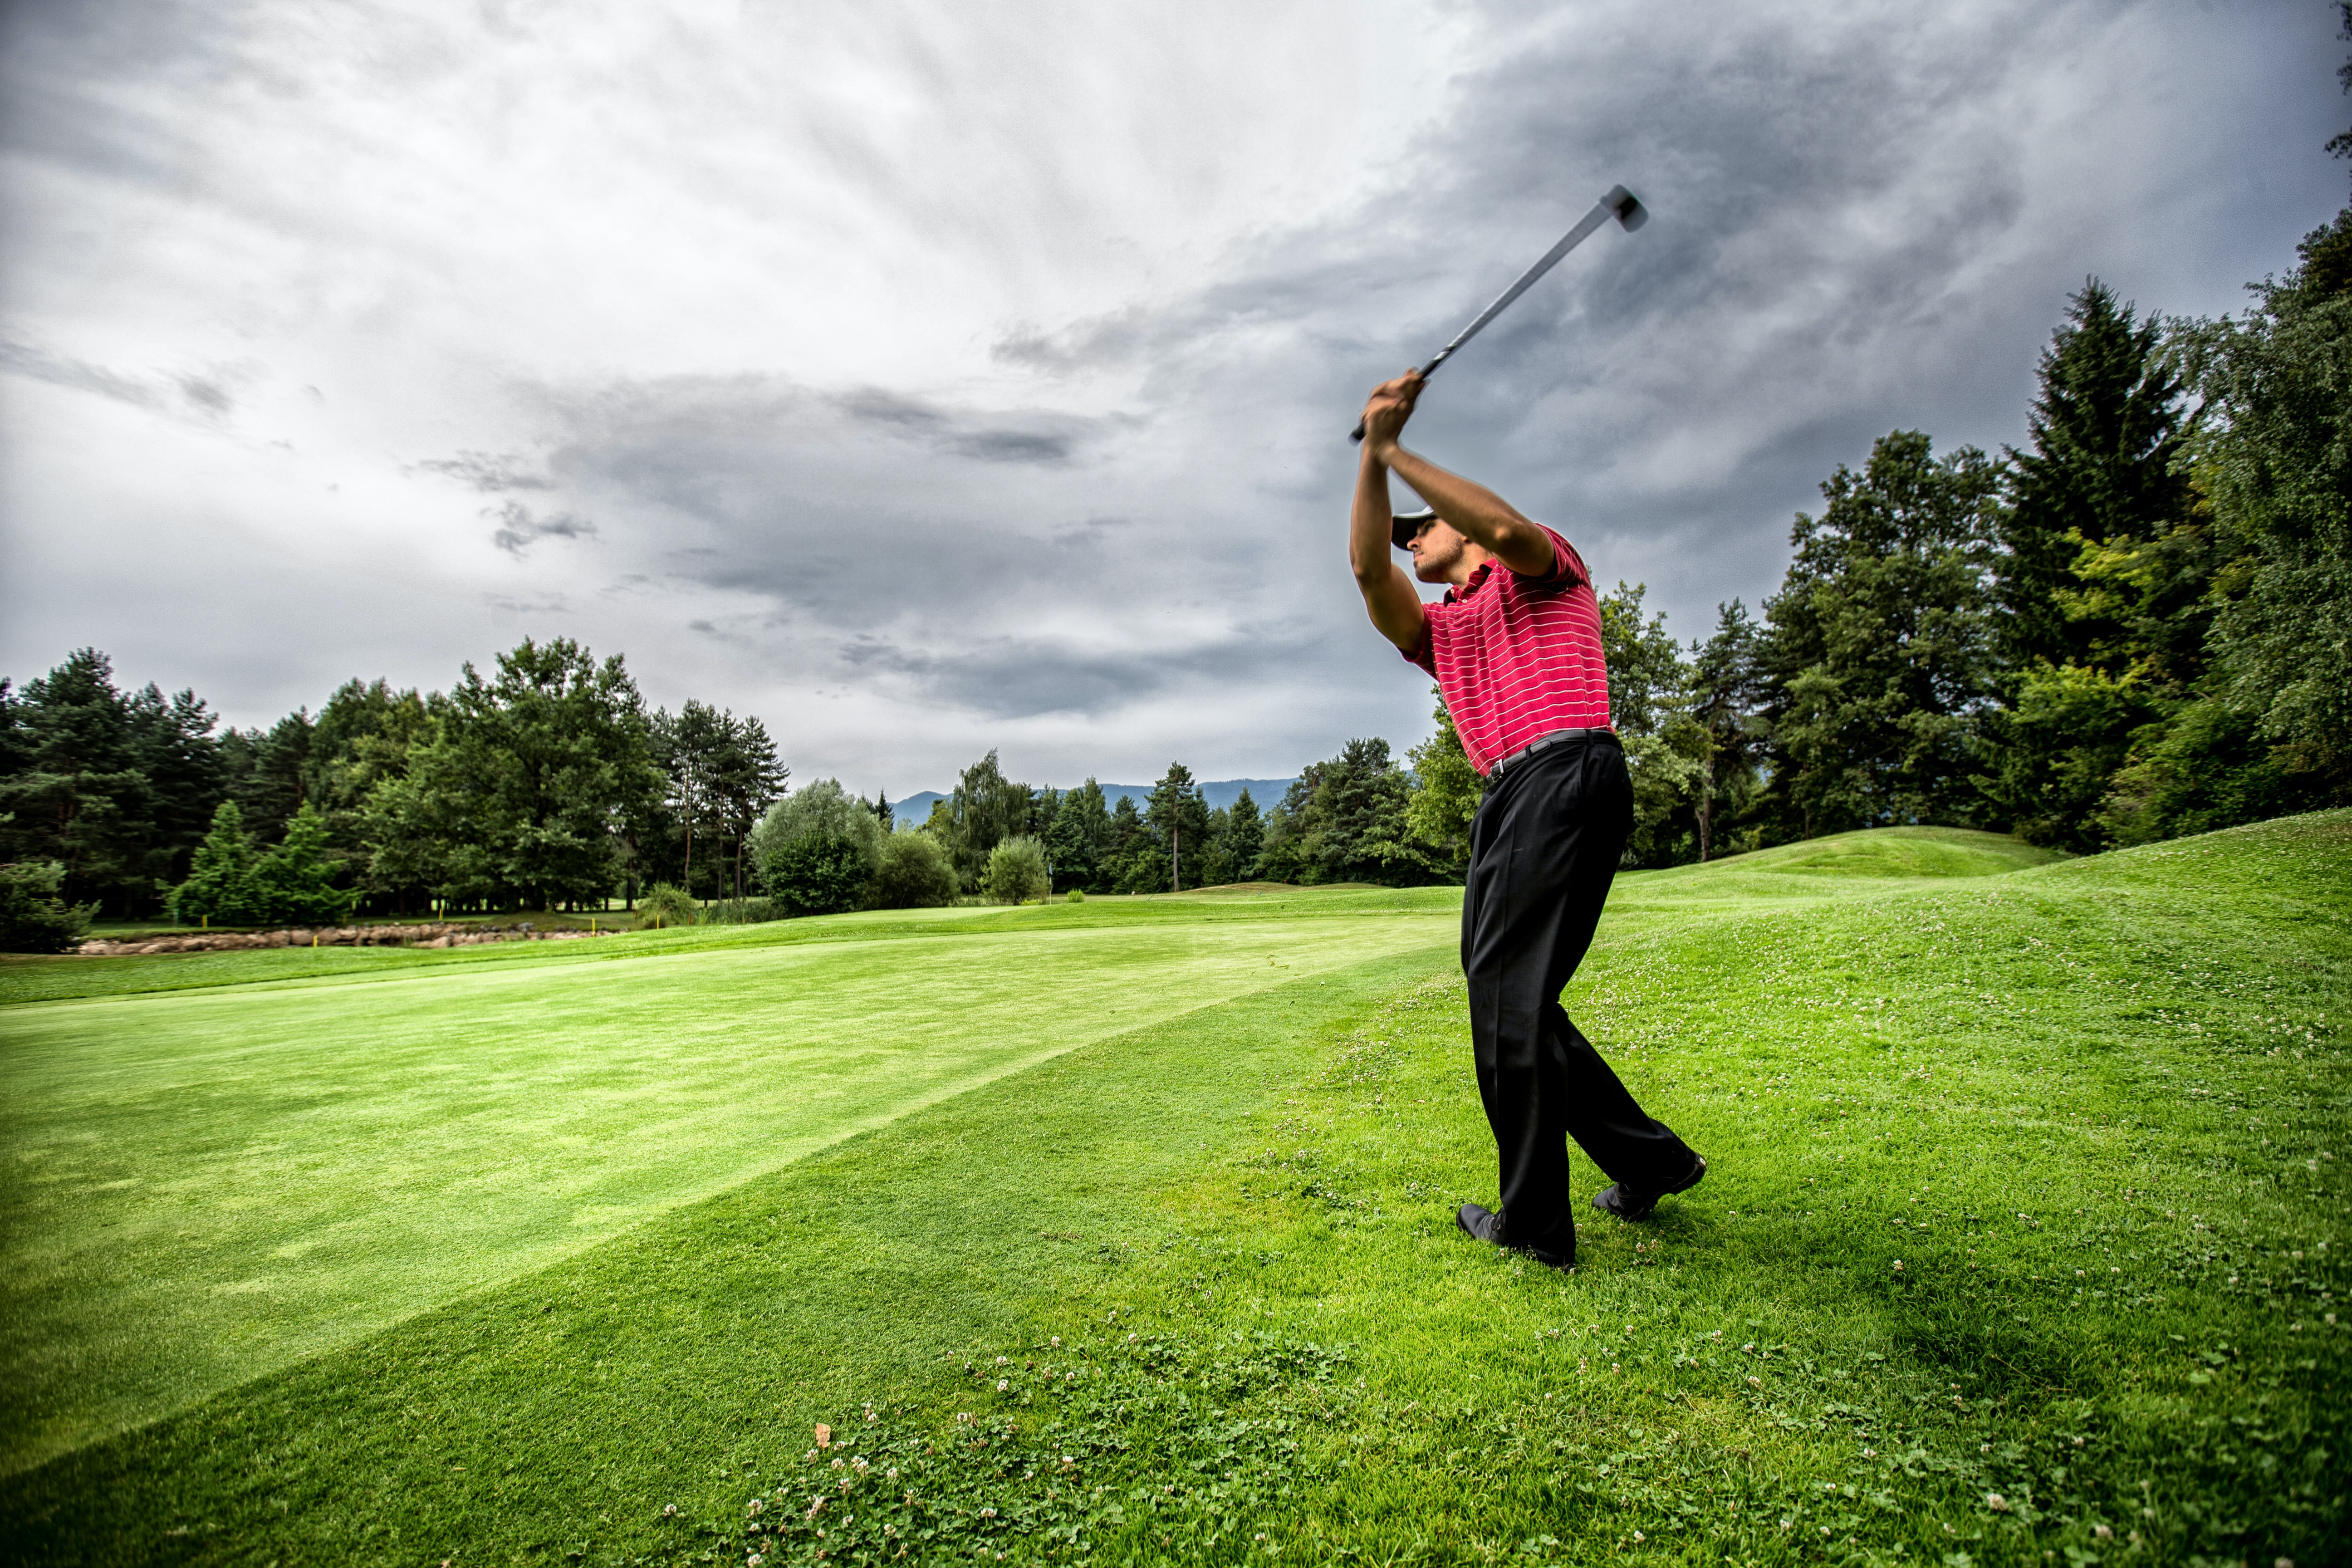 A man completes the swing of a driver on a lush fairway.